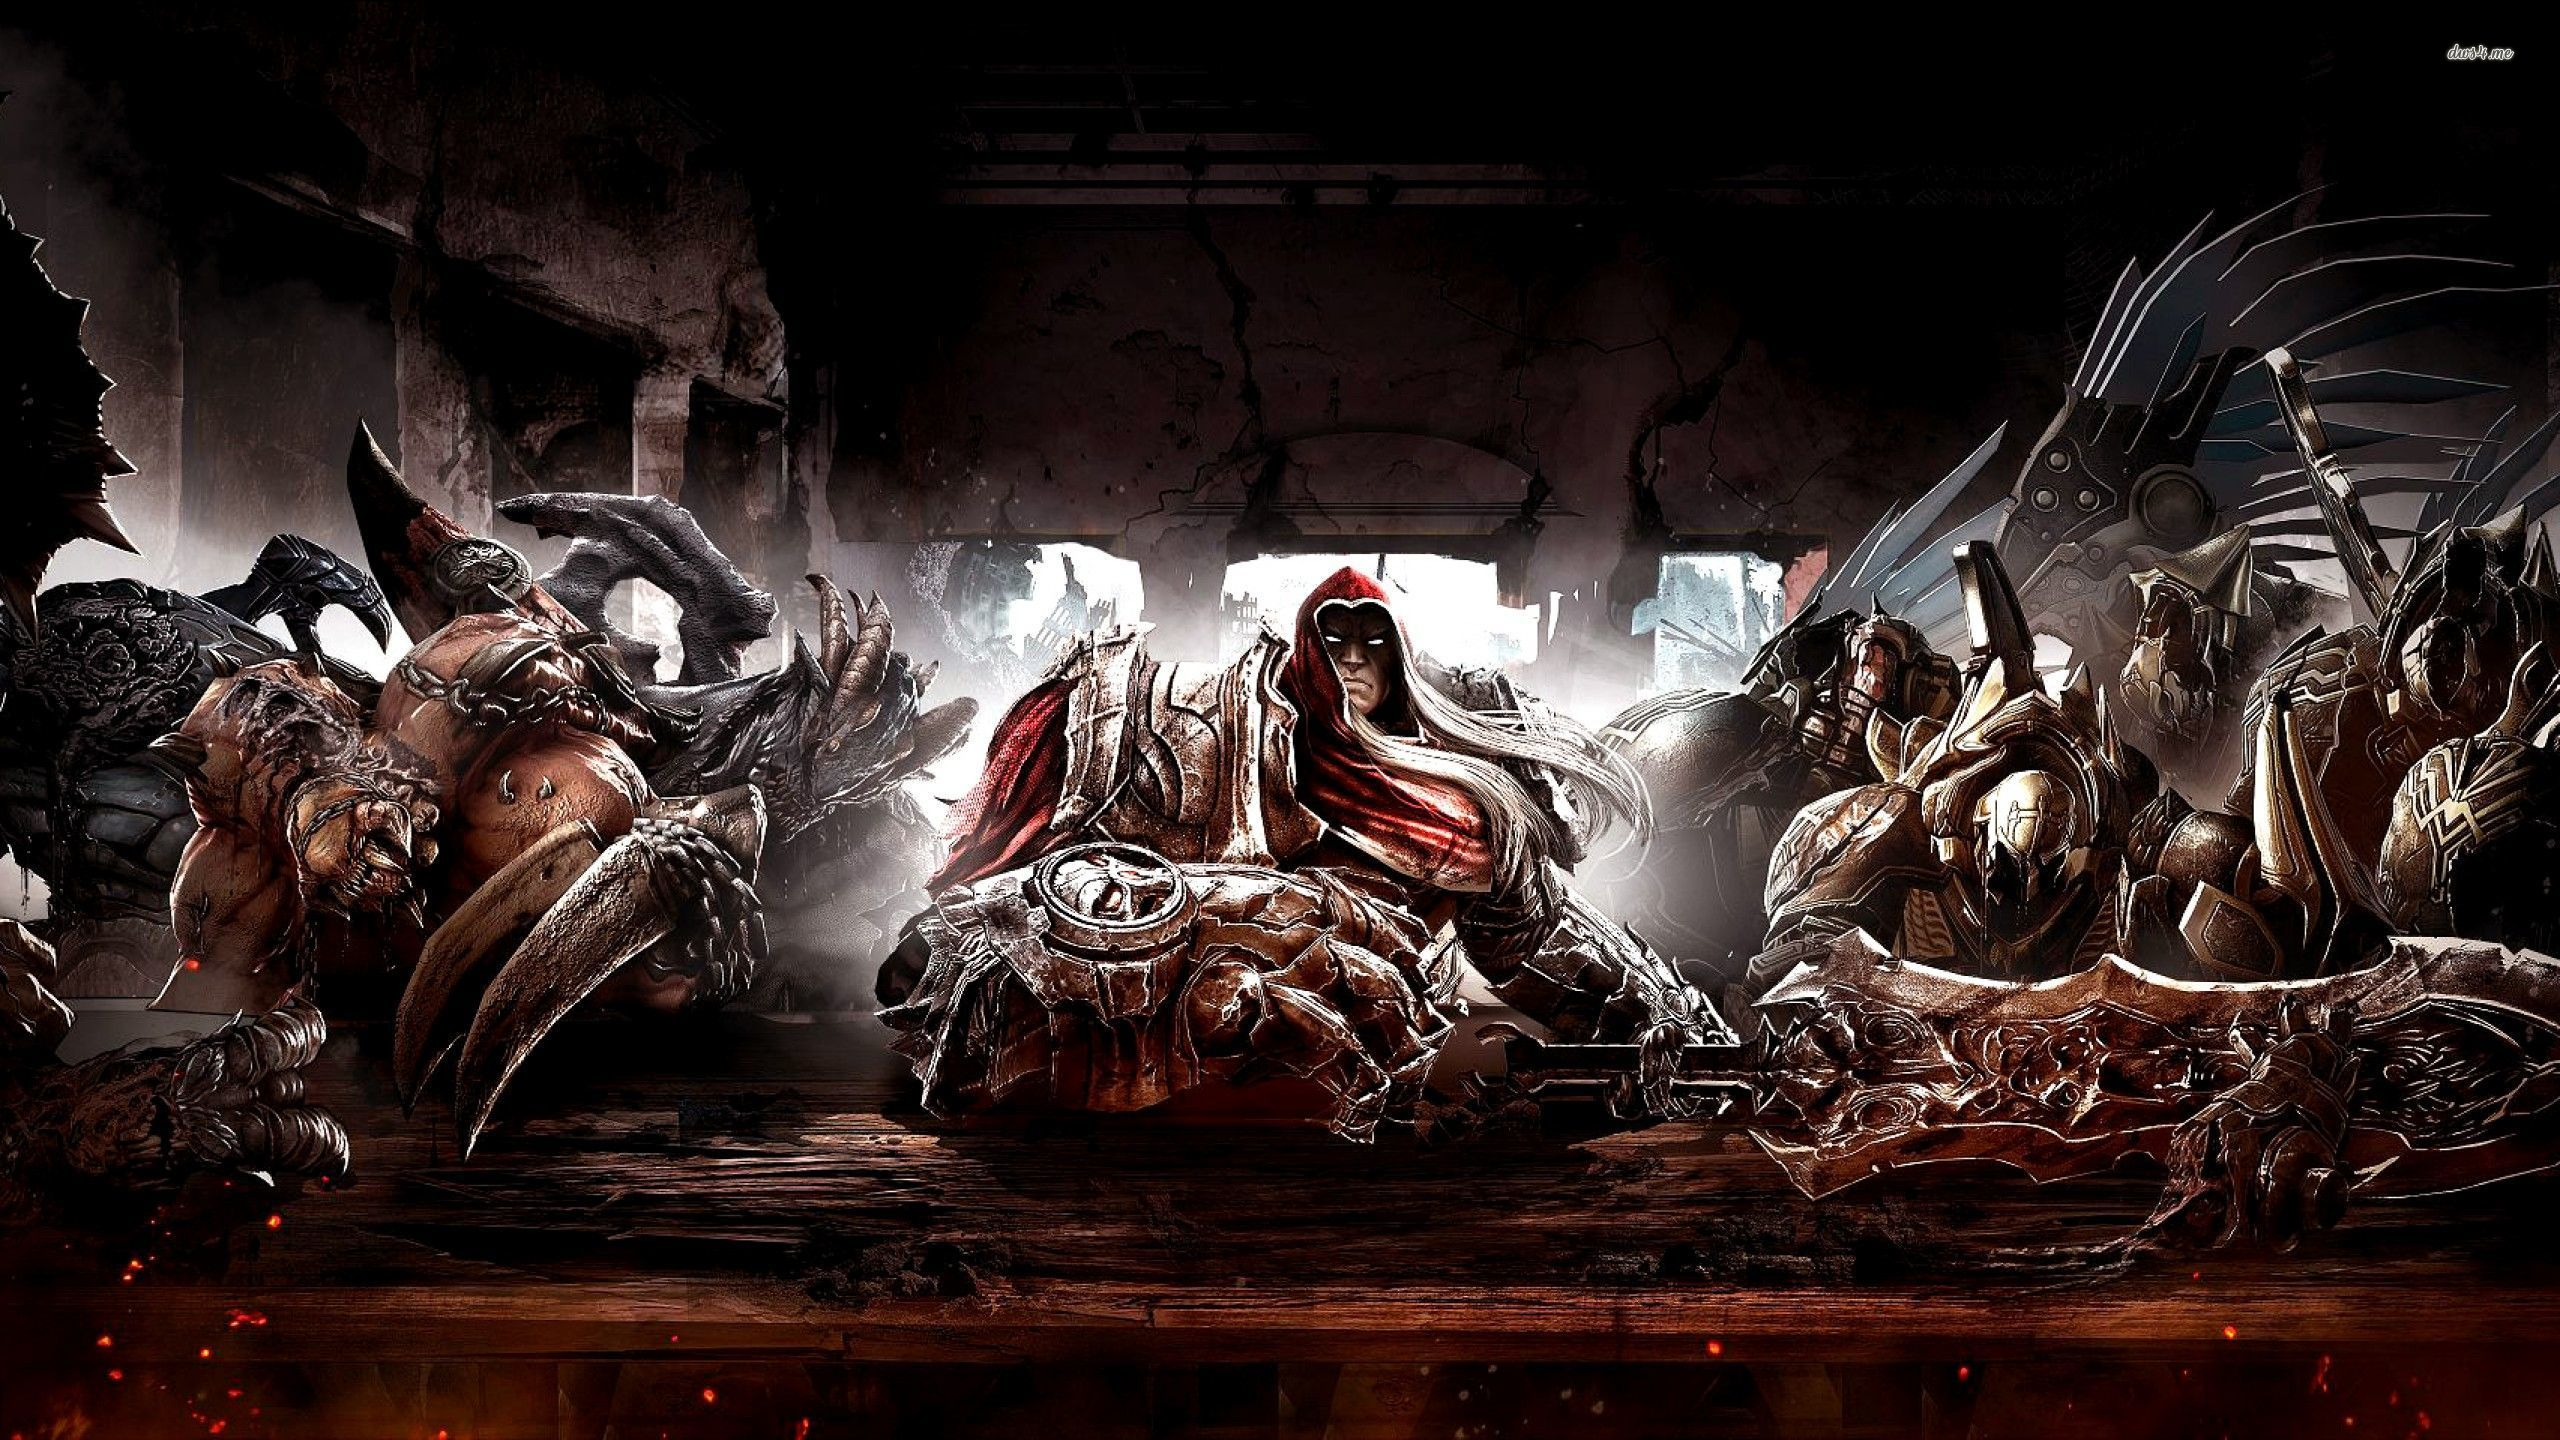 Four Horsemen at the table in Darksiders wallpaper   Game 2560x1440